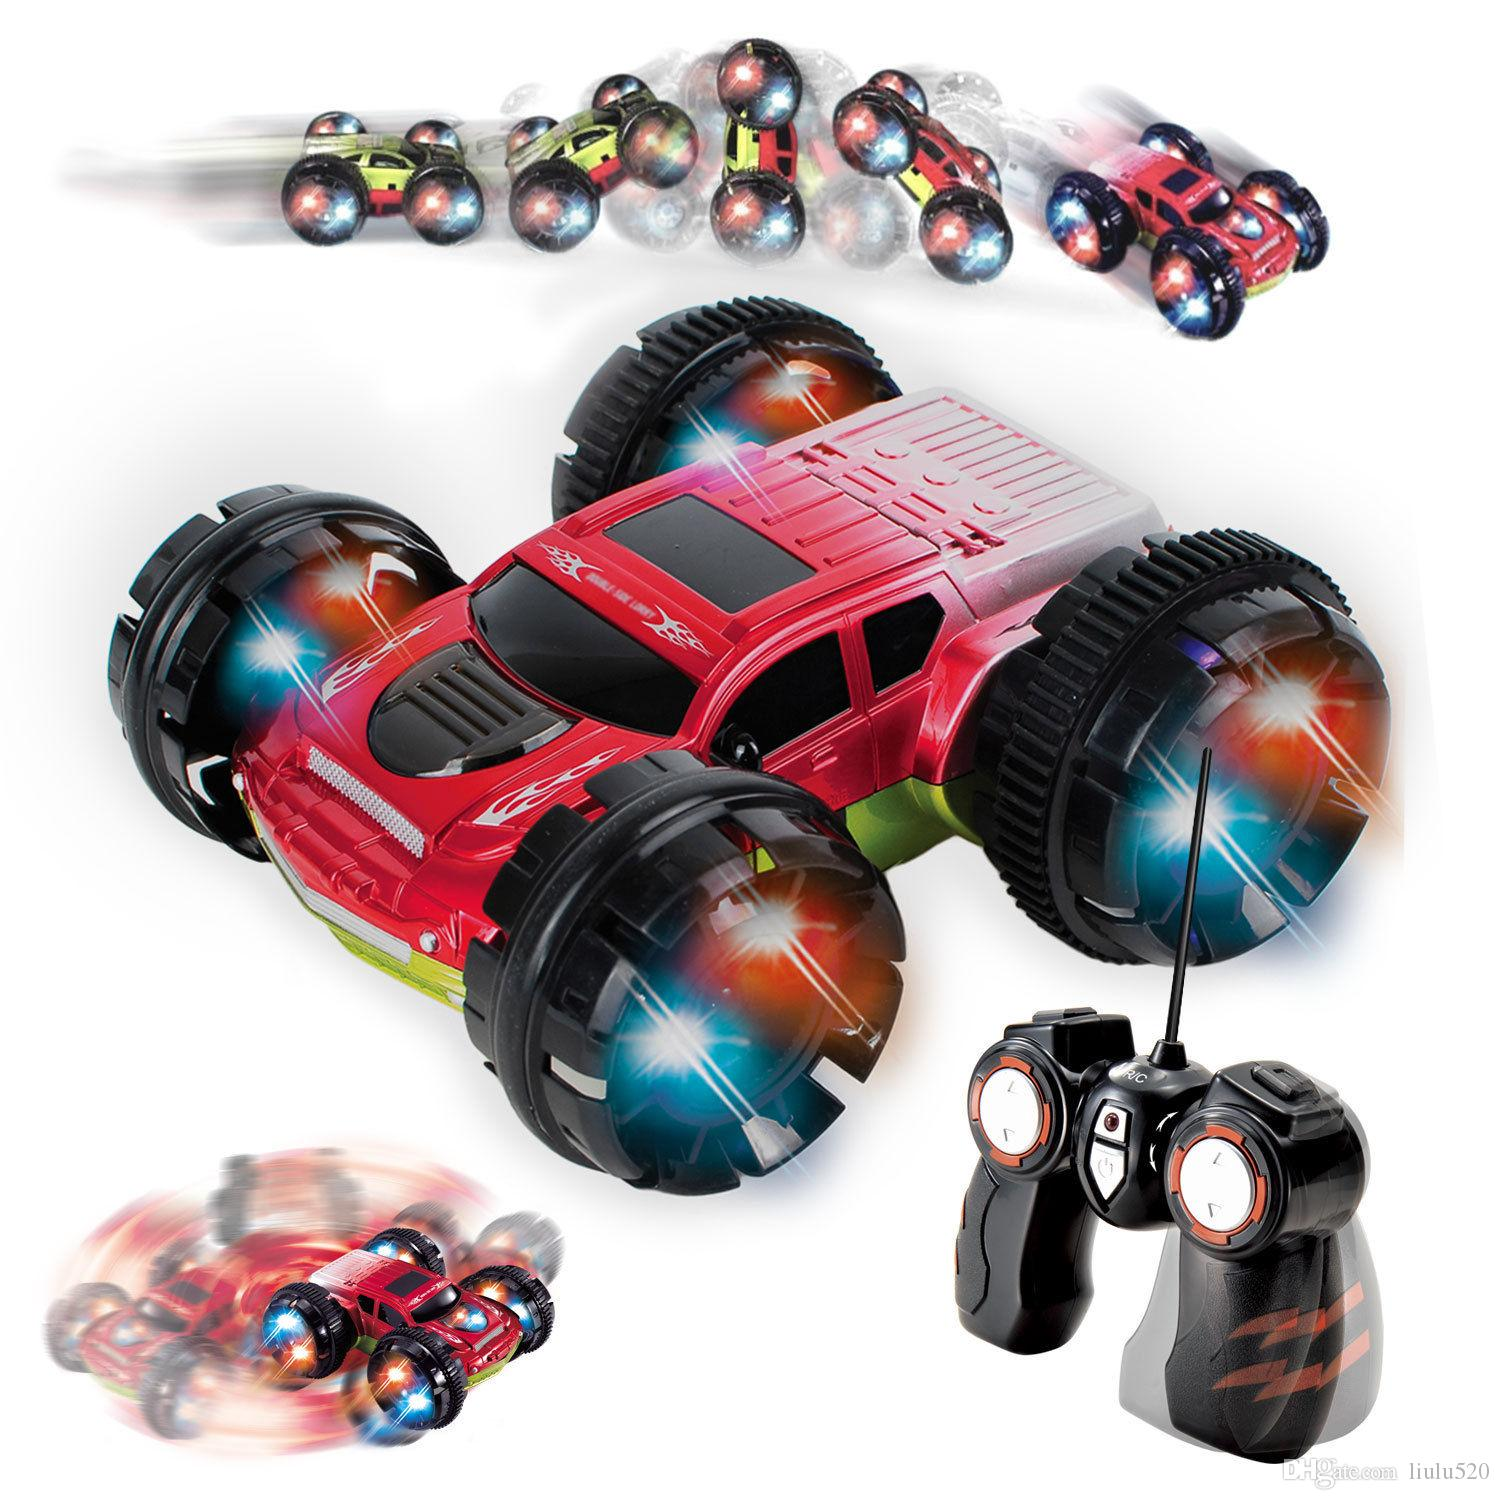 double sided remote control car extreme stunt rc car for kids red